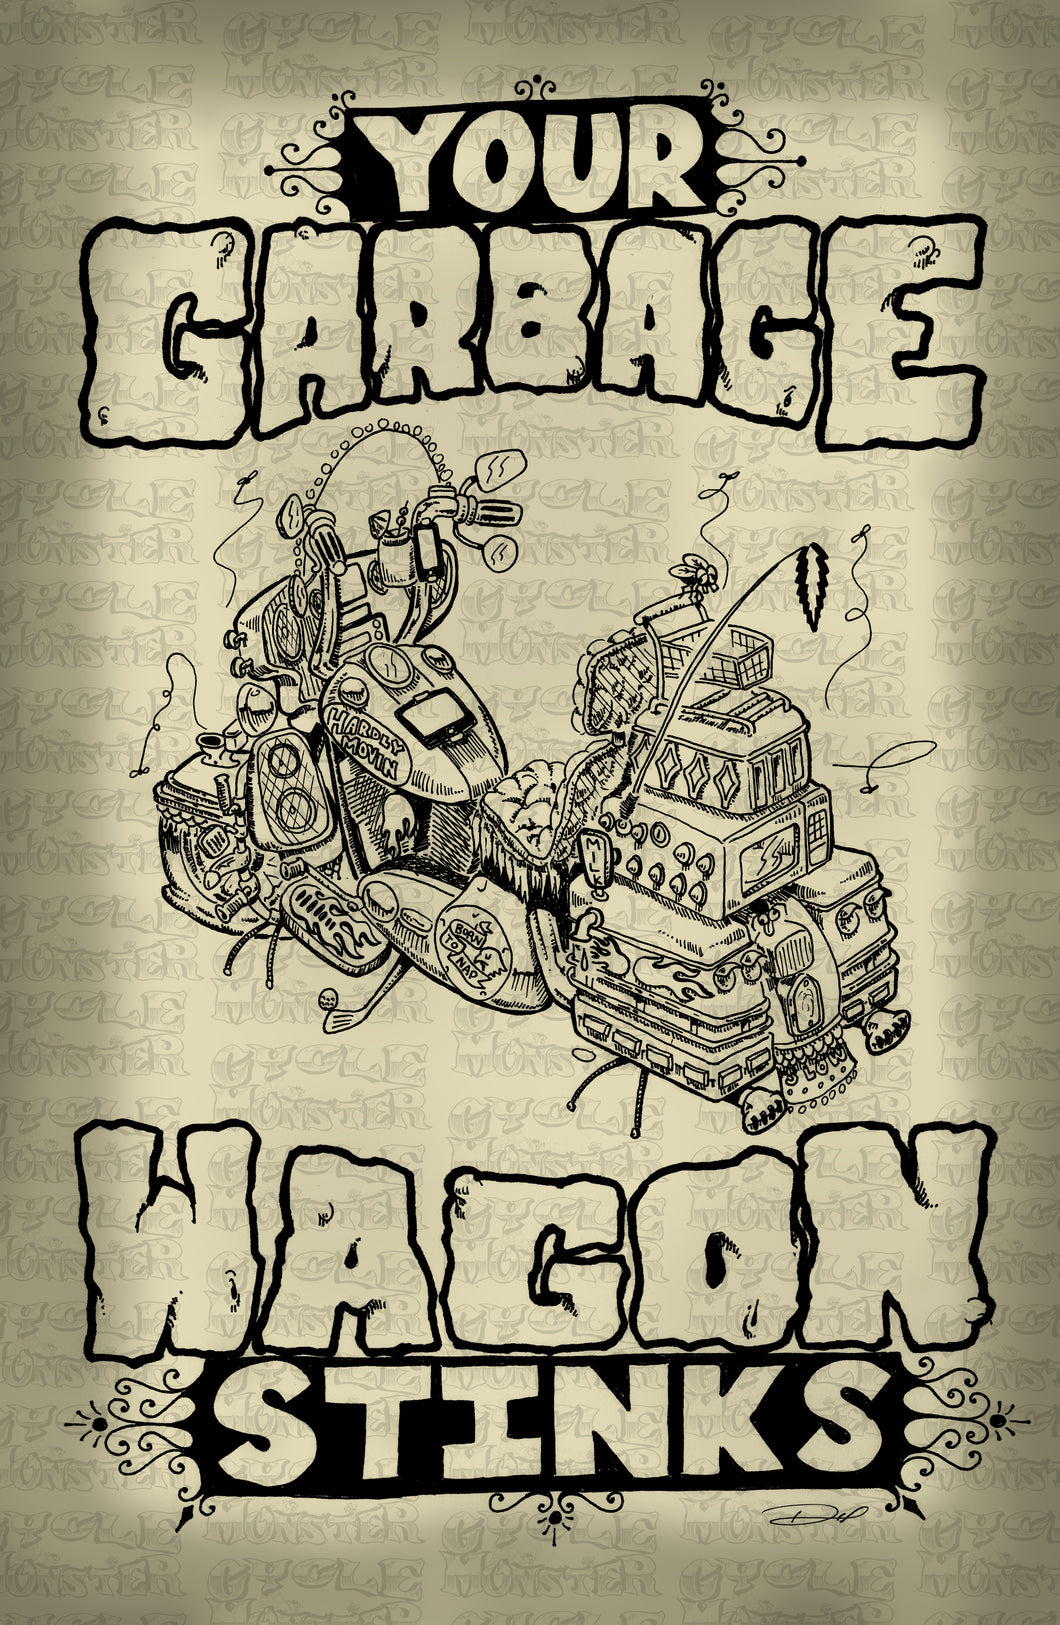 (12 poster) YOUR GARBAGE WAGON STINKS